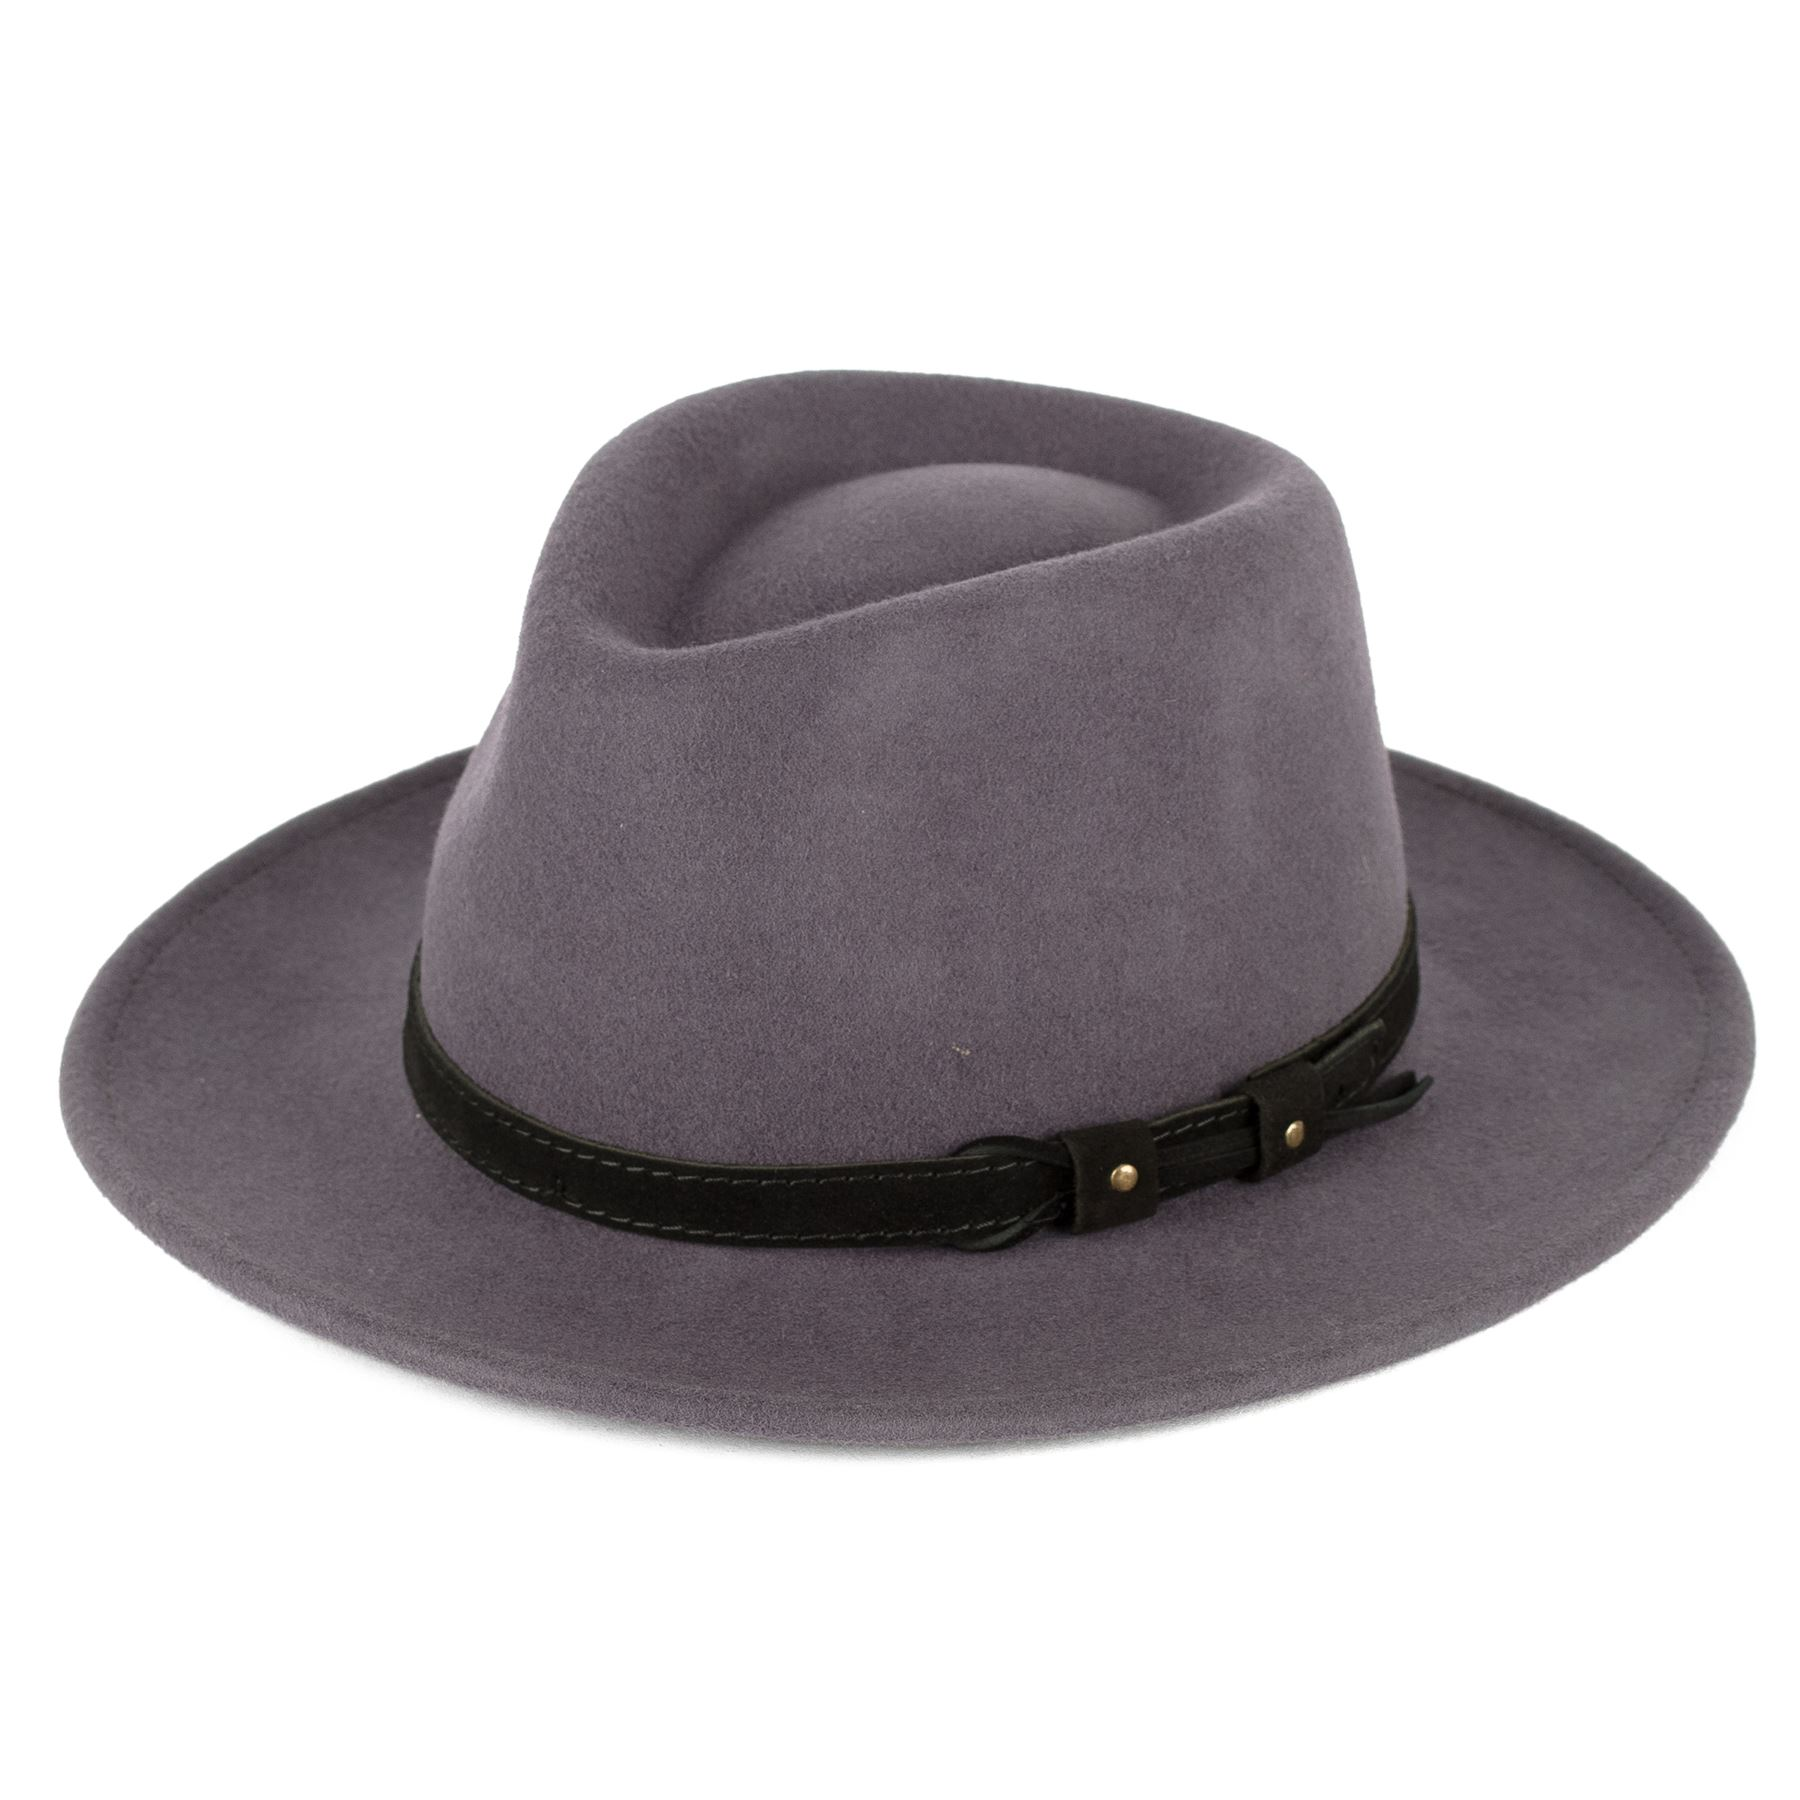 Wool Fedora Hat With Leather Belt Waterproof   Crushable Handmade in ... 8a4fb890757